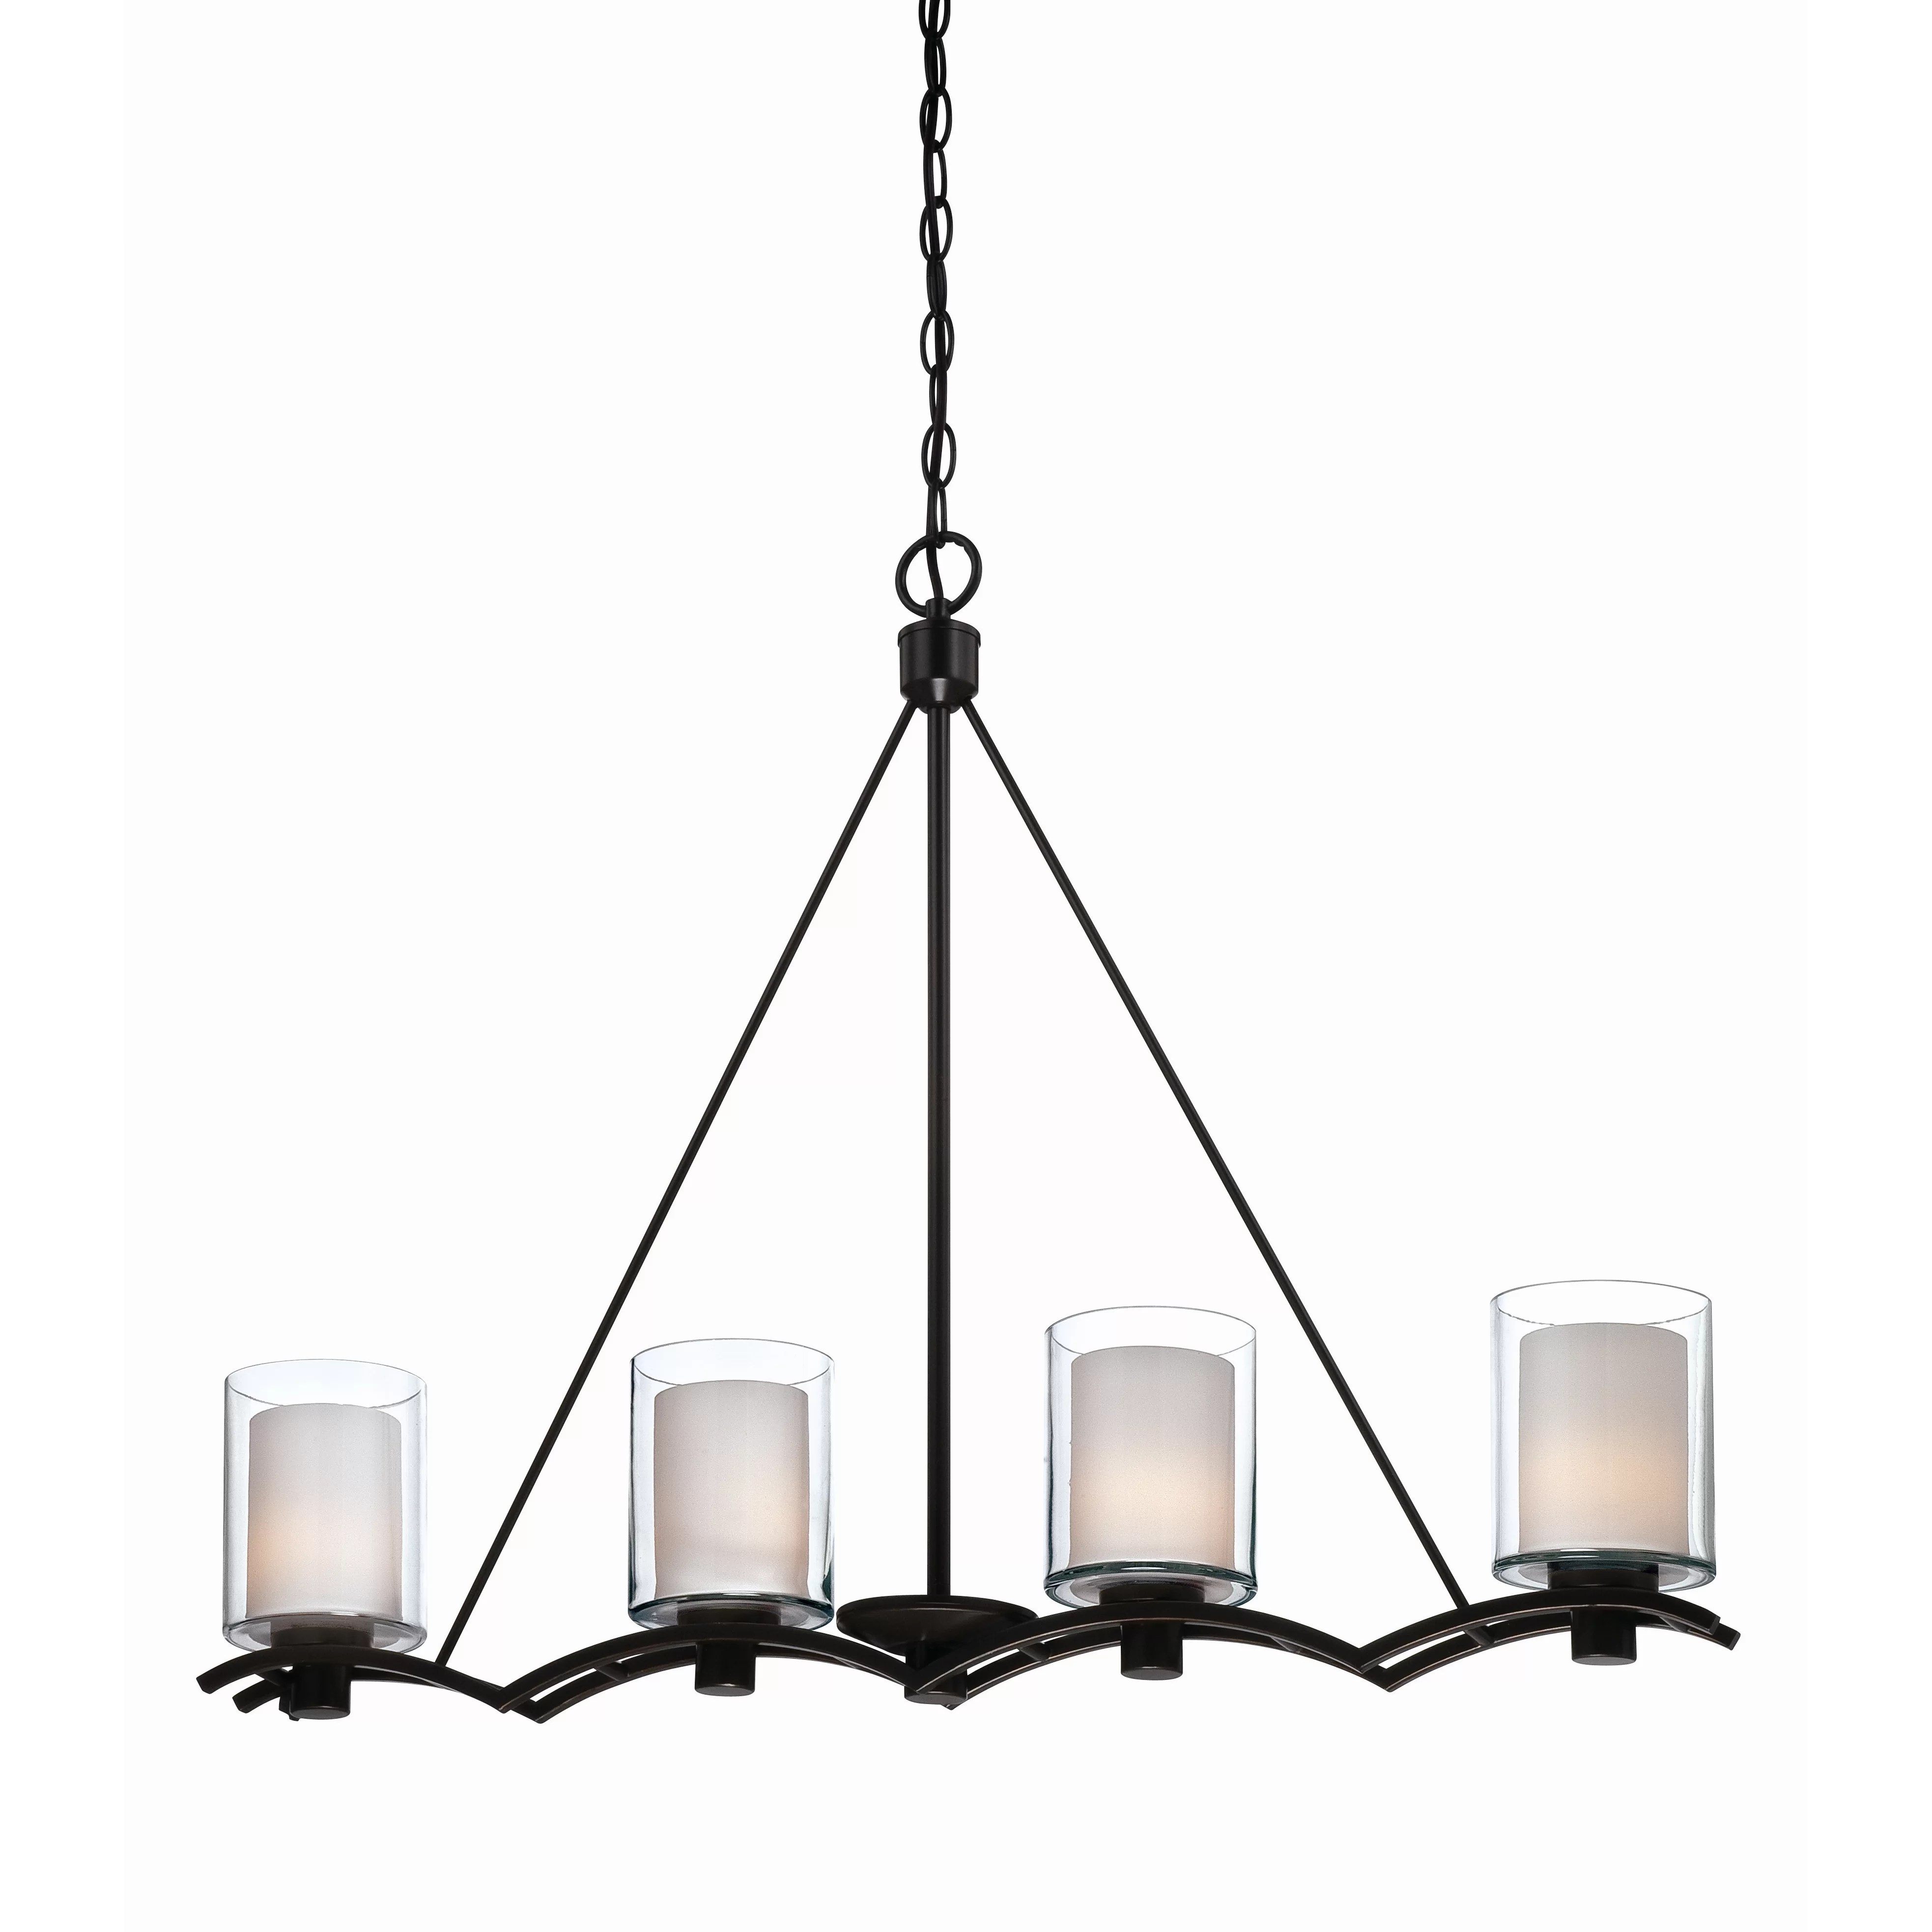 Pendant Island Lights Artcraft Lighting Andover 4 Light Kitchen Island Pendant